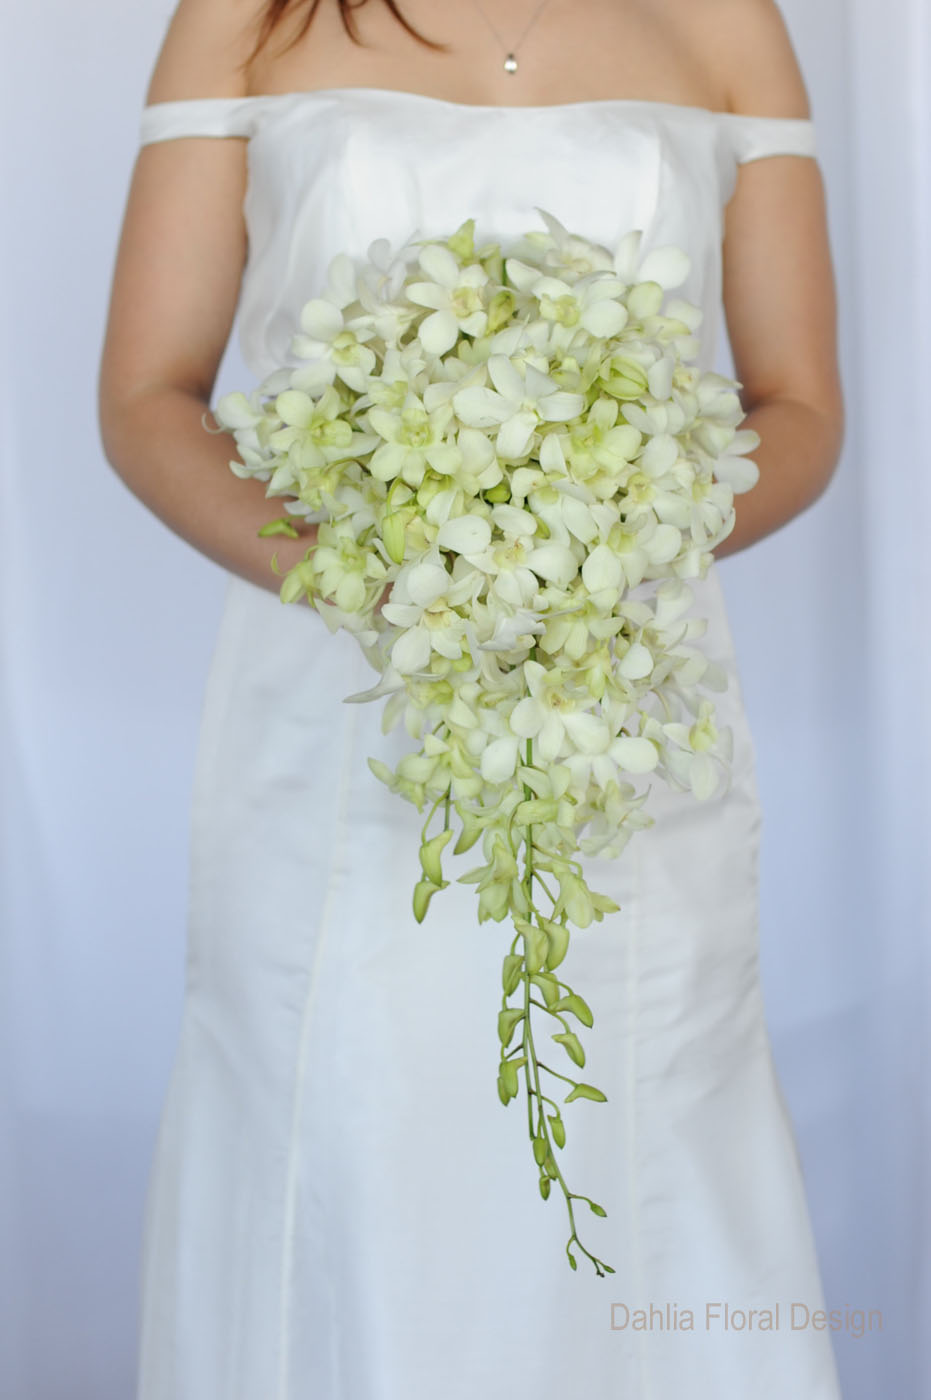 Cascade Orchid Bridal Bouquet : White and green wedding bouquets dahlia floral design